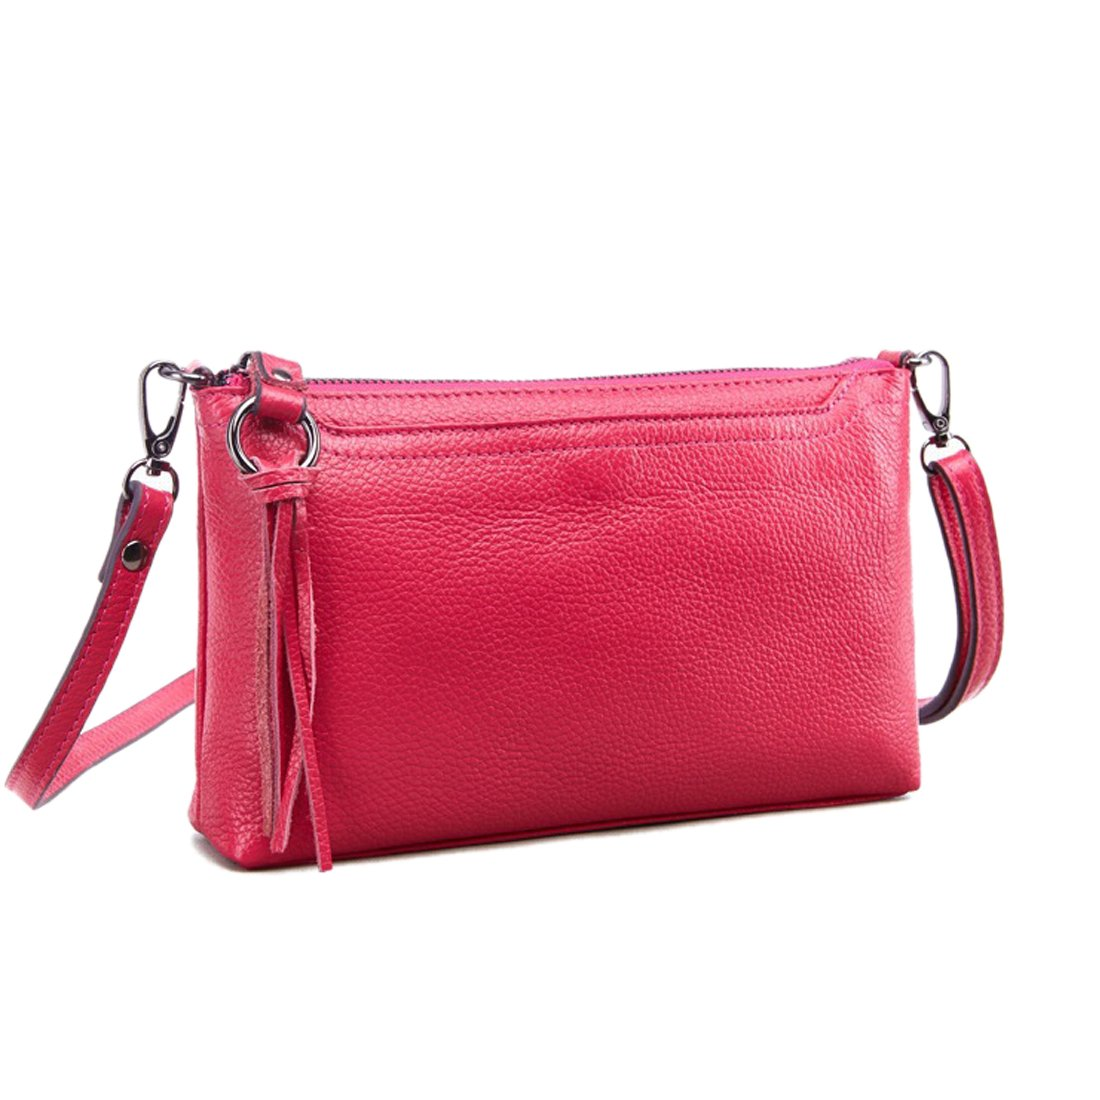 Artwell Women Genuine Leather Crossbody Bag Small Shoulder Bag Zipper Clutch Phone Wallet Purse for Lady (Rose)